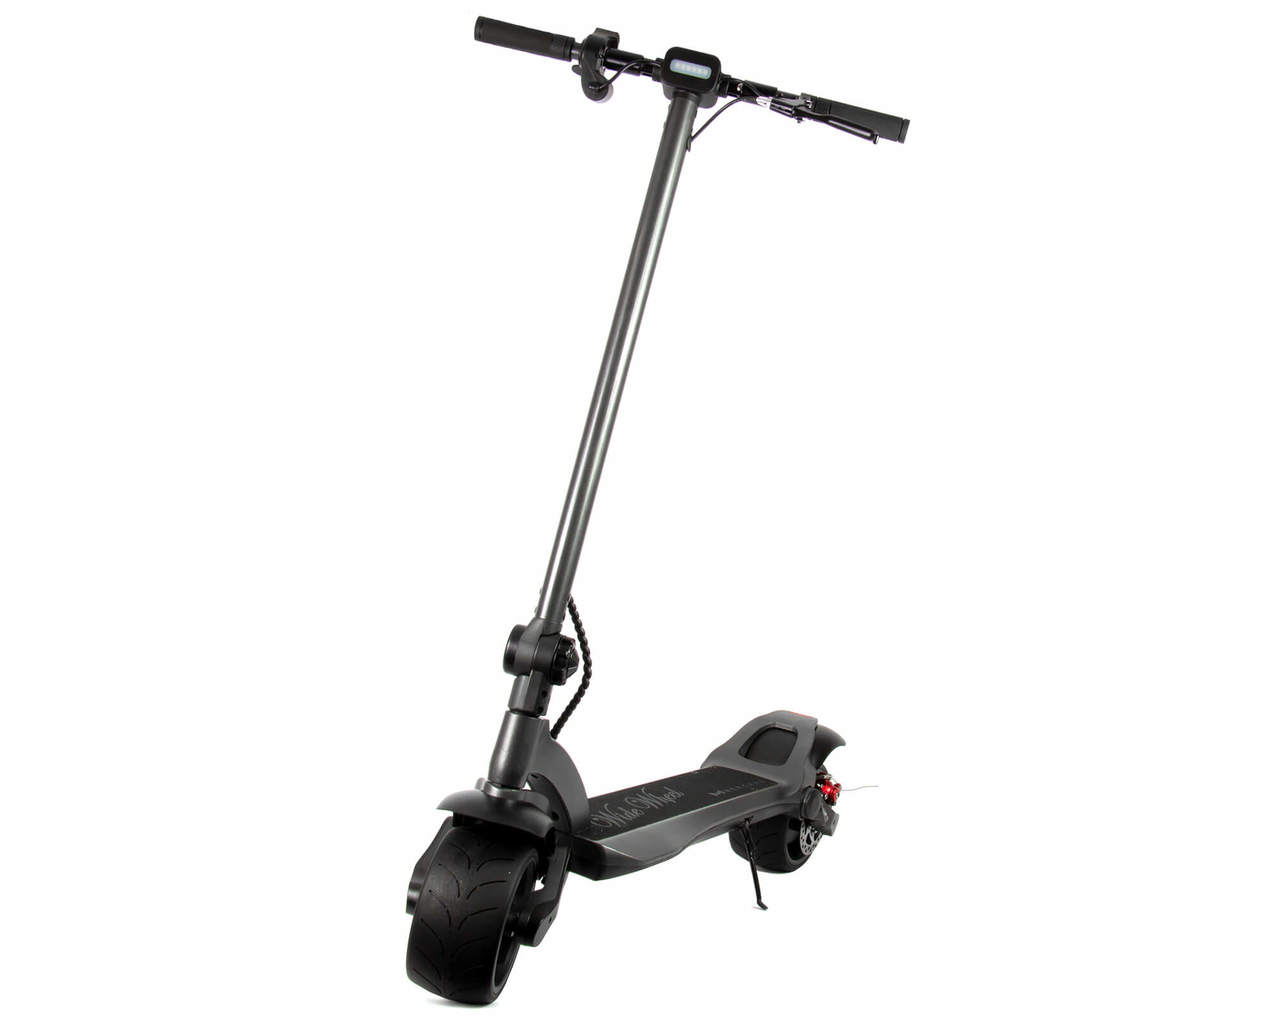 electric scooter comparison Mercane WideWheel (Single)